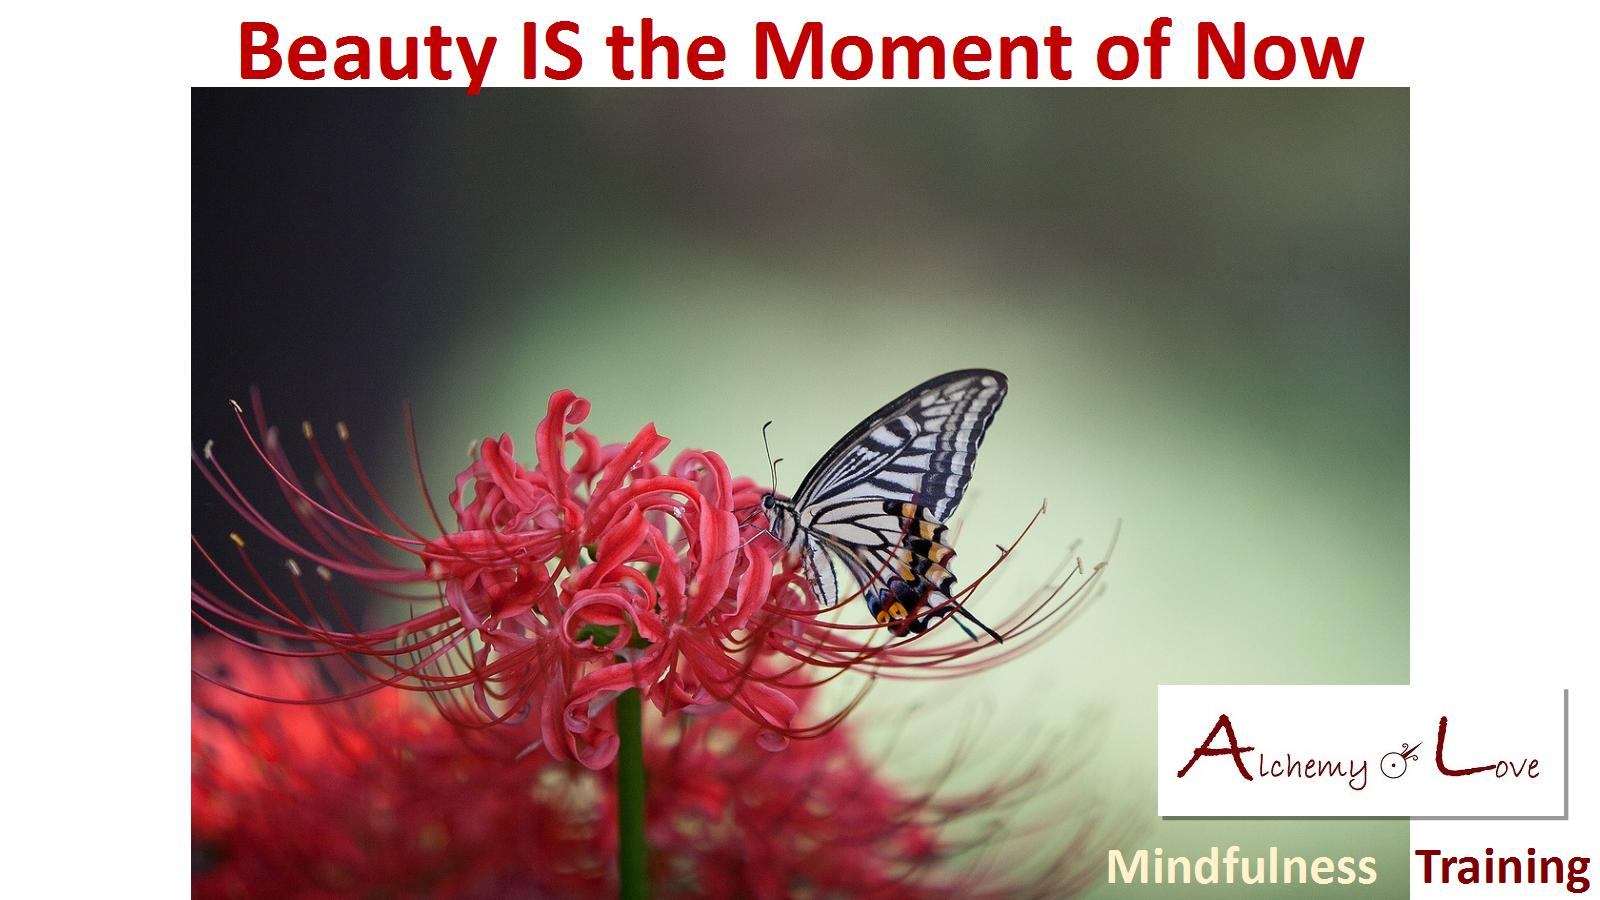 Beauty is the moment of now